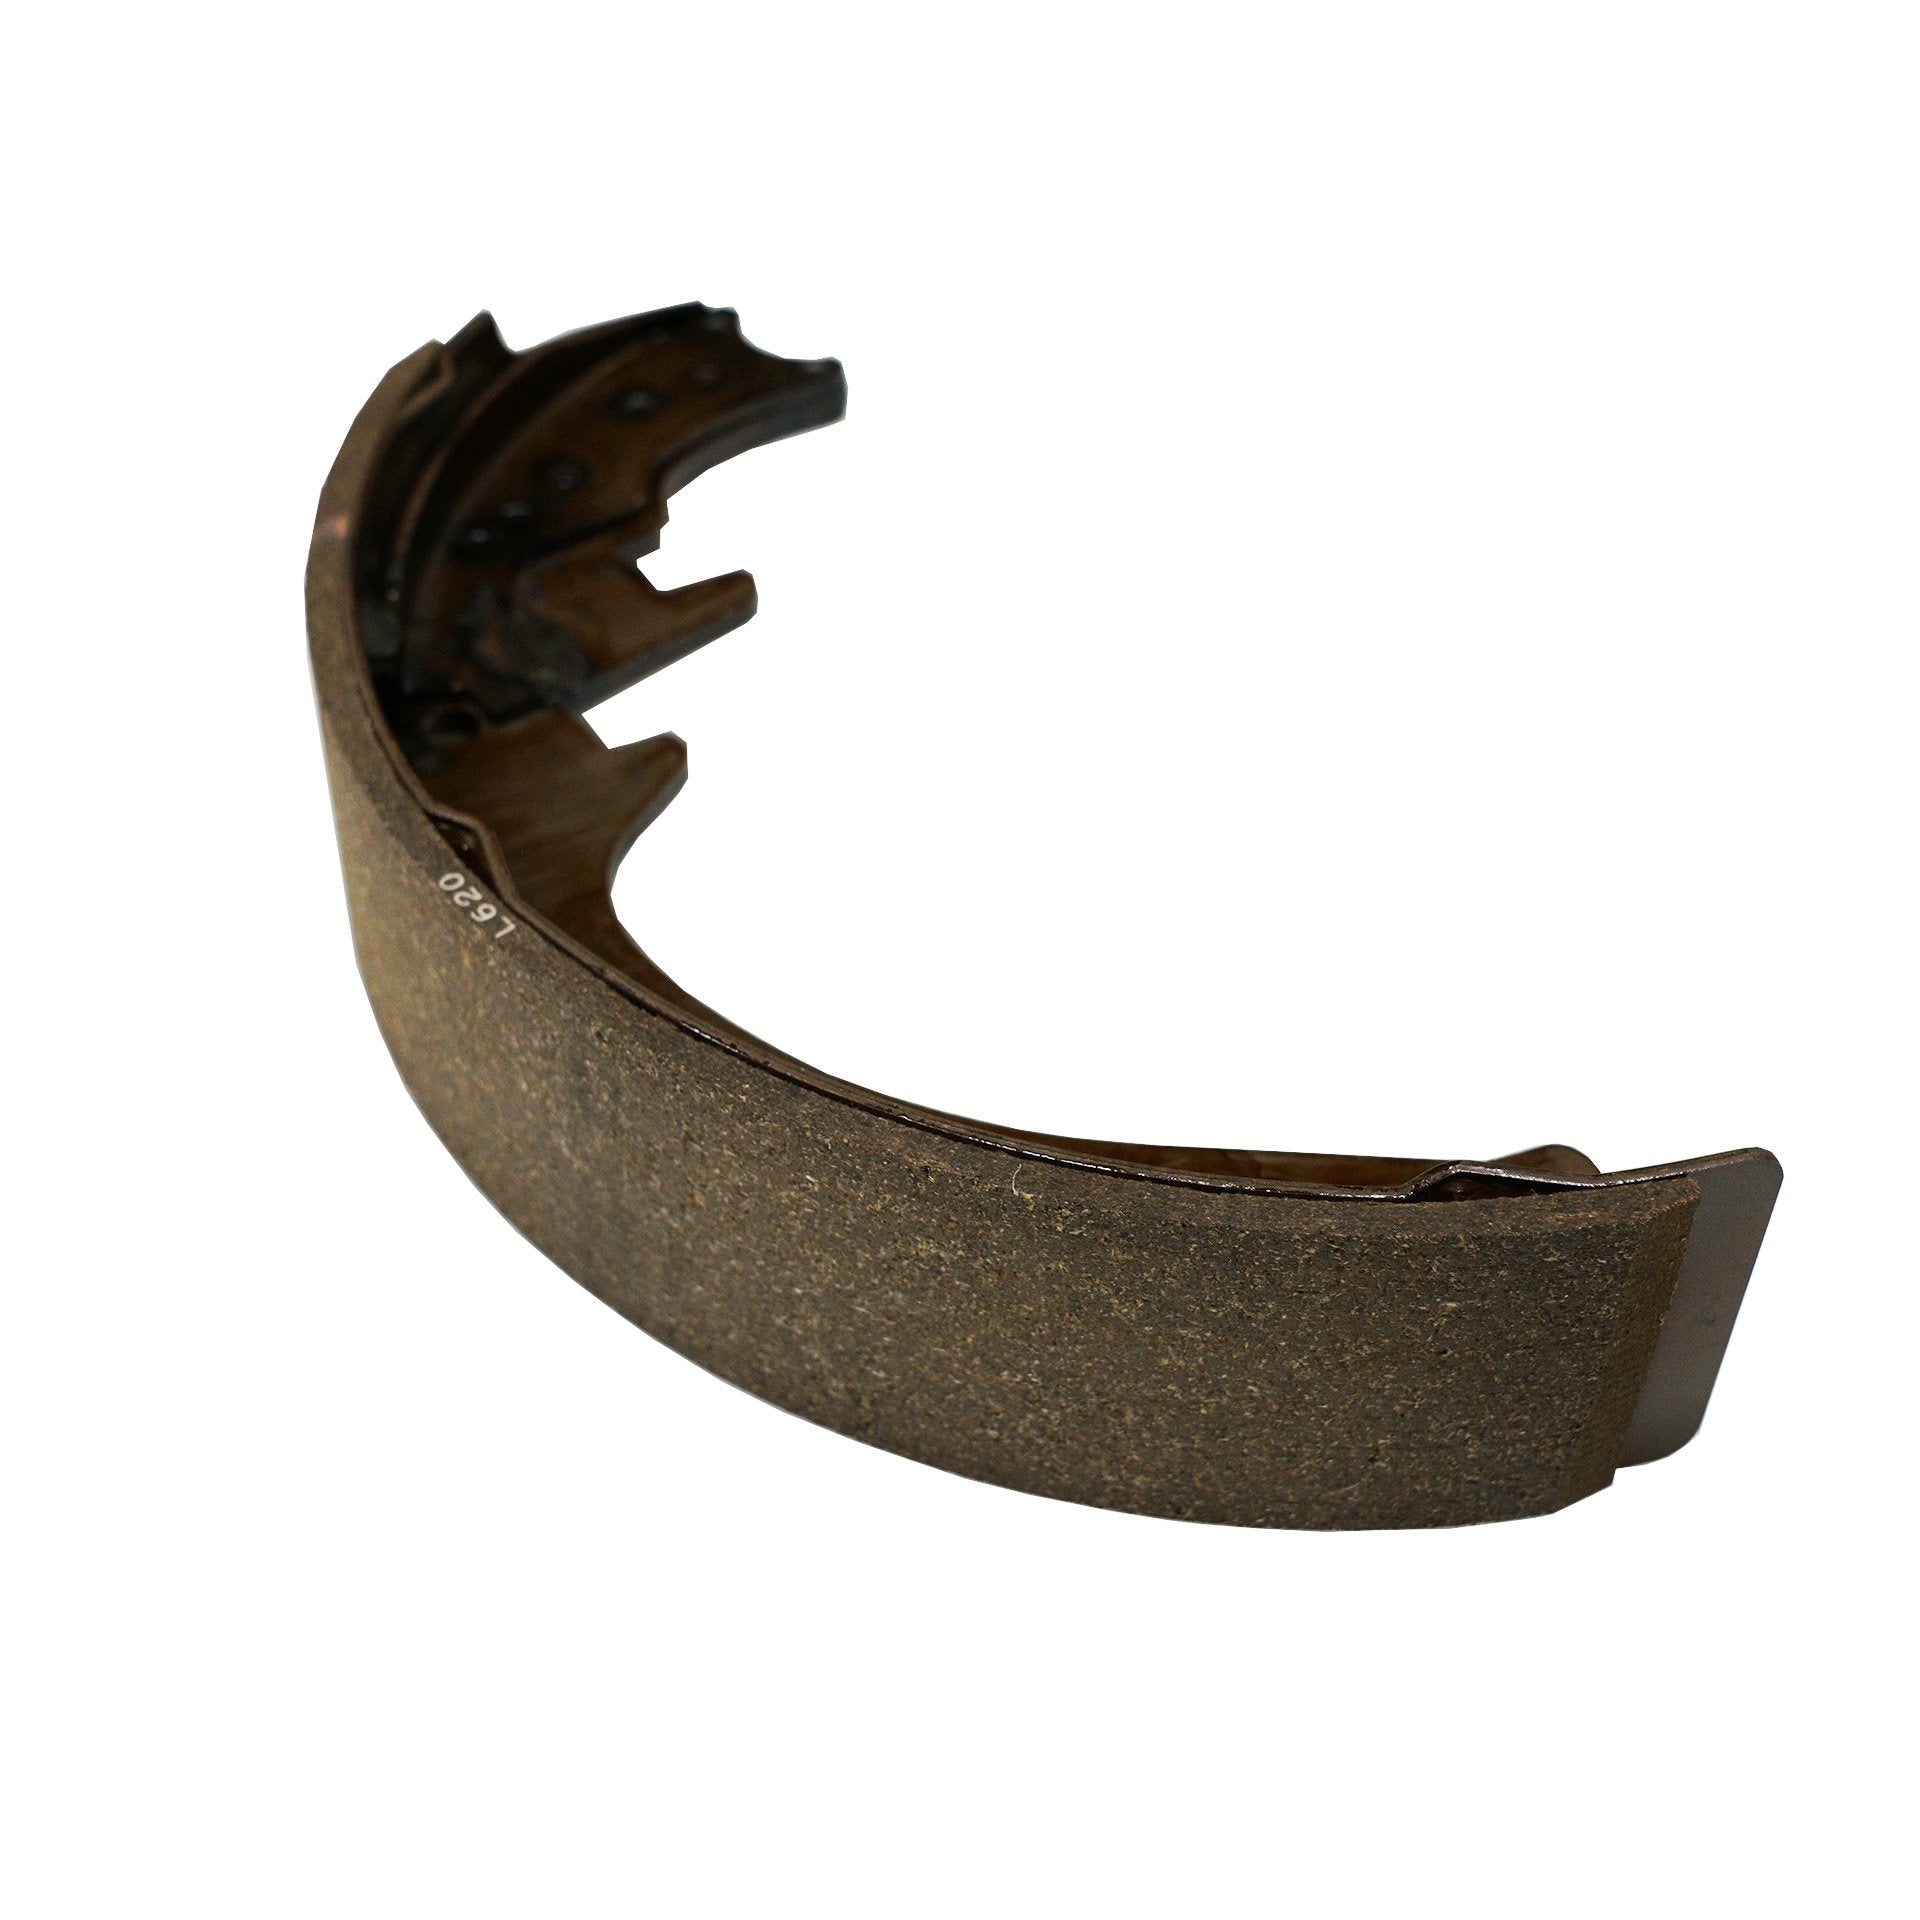 Brake Shoe Set SKU: 44999-00h00